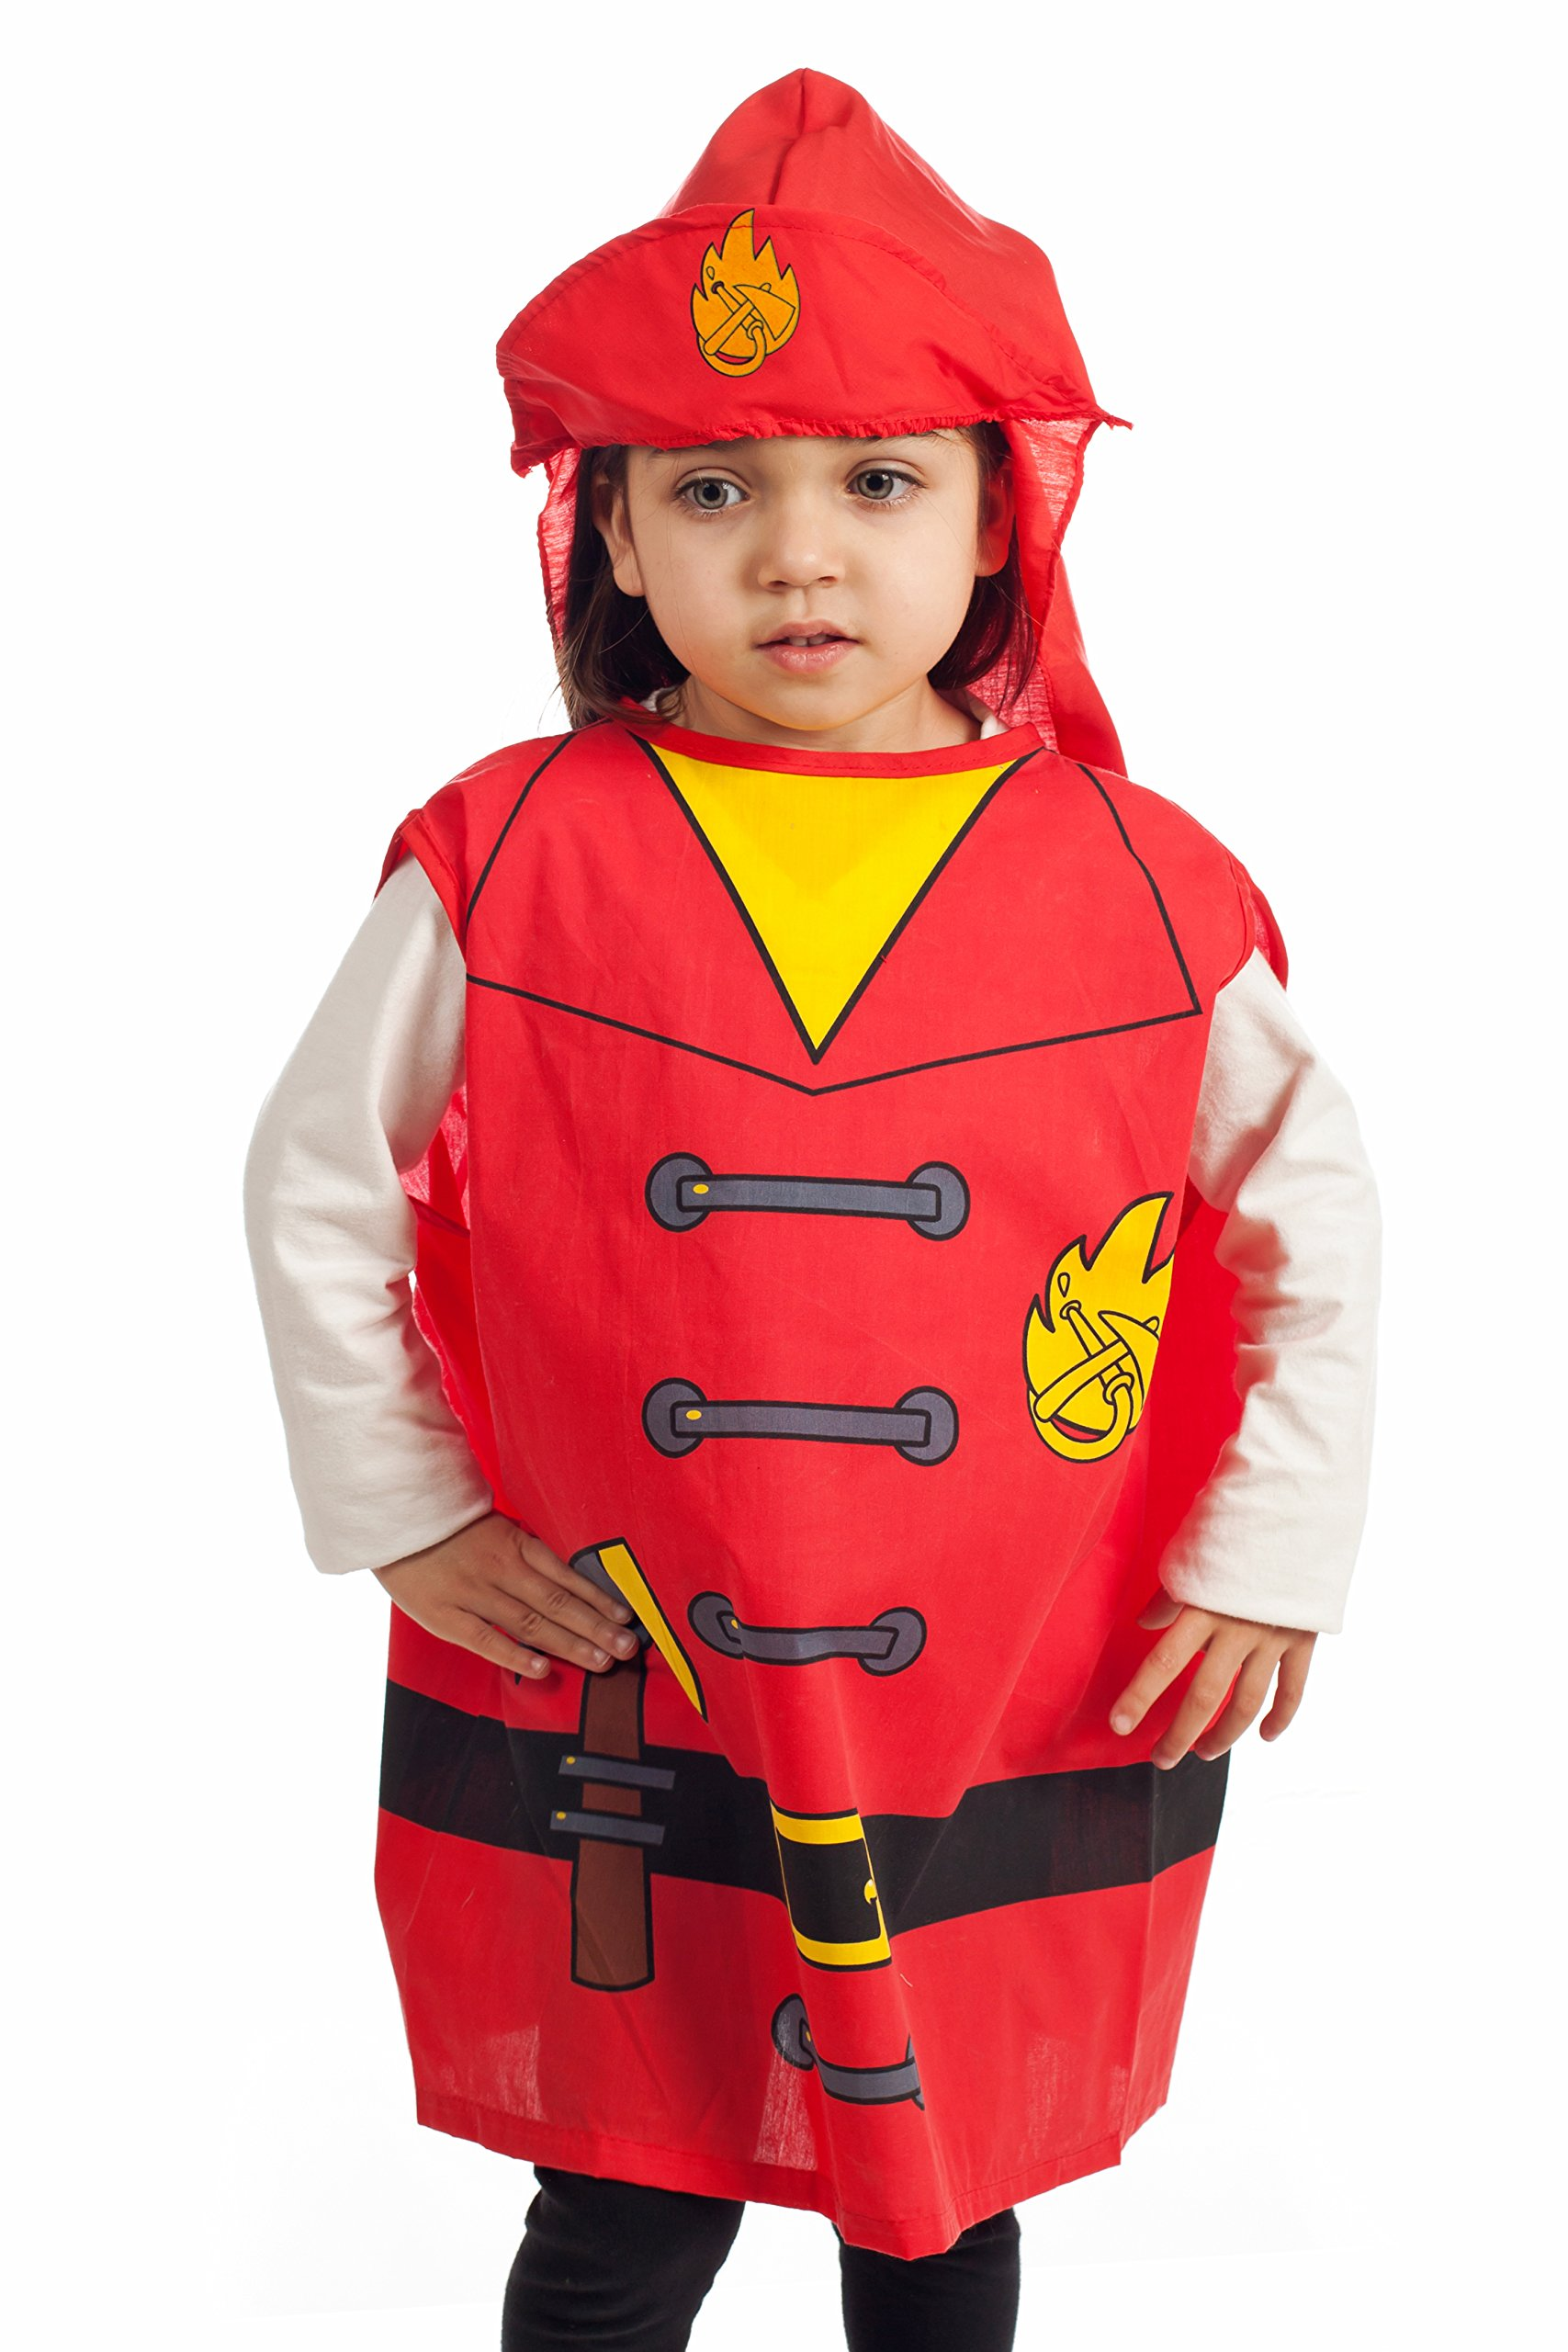 IQ Toys 6 Pieces Dress Up Costumes Fireman Gotham Cook Nurse Clown Witch by IQ Toys (Image #7)